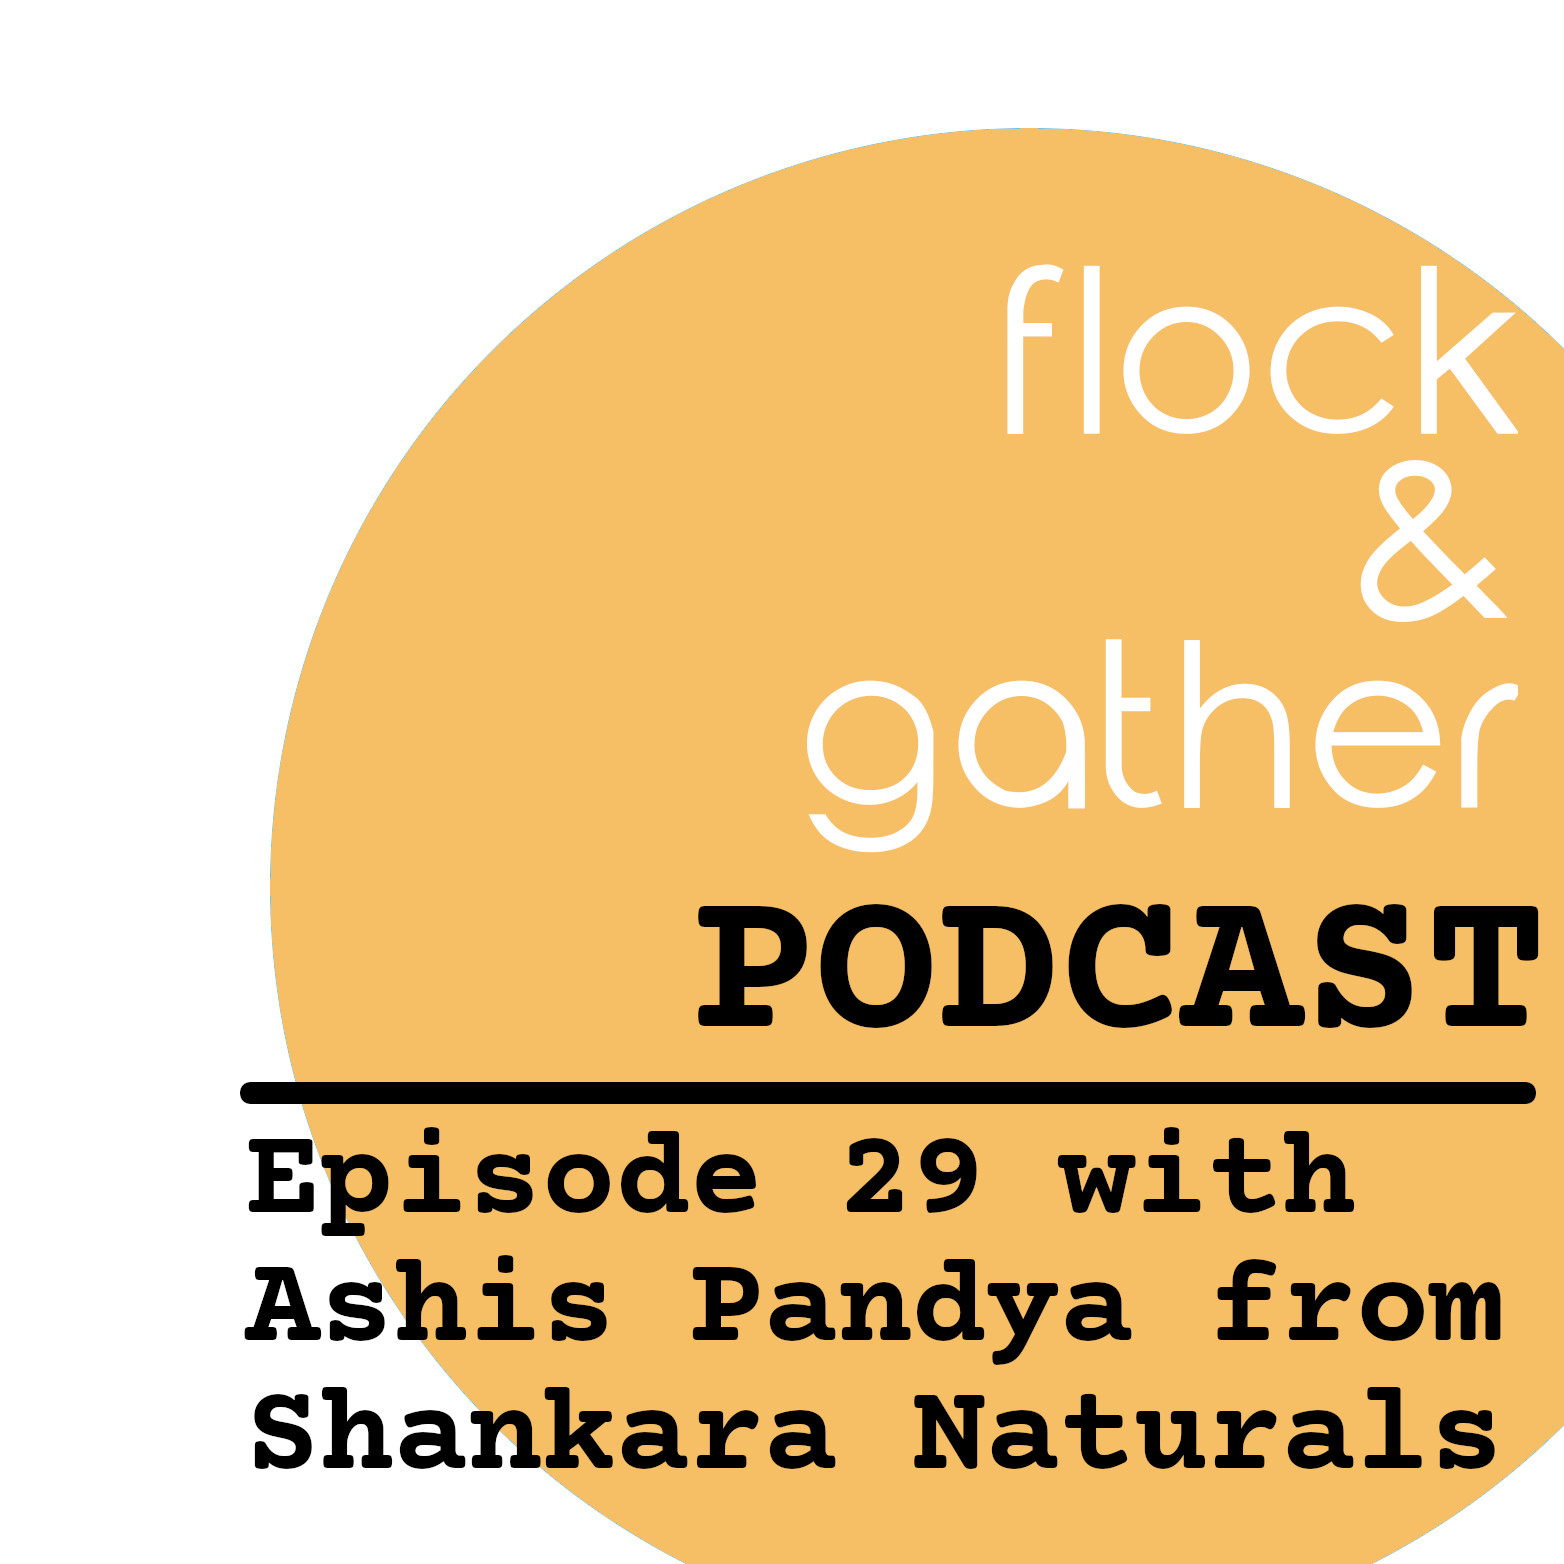 Flock and Gather...new episode with Ashis Pandya from Shankara Naturals!